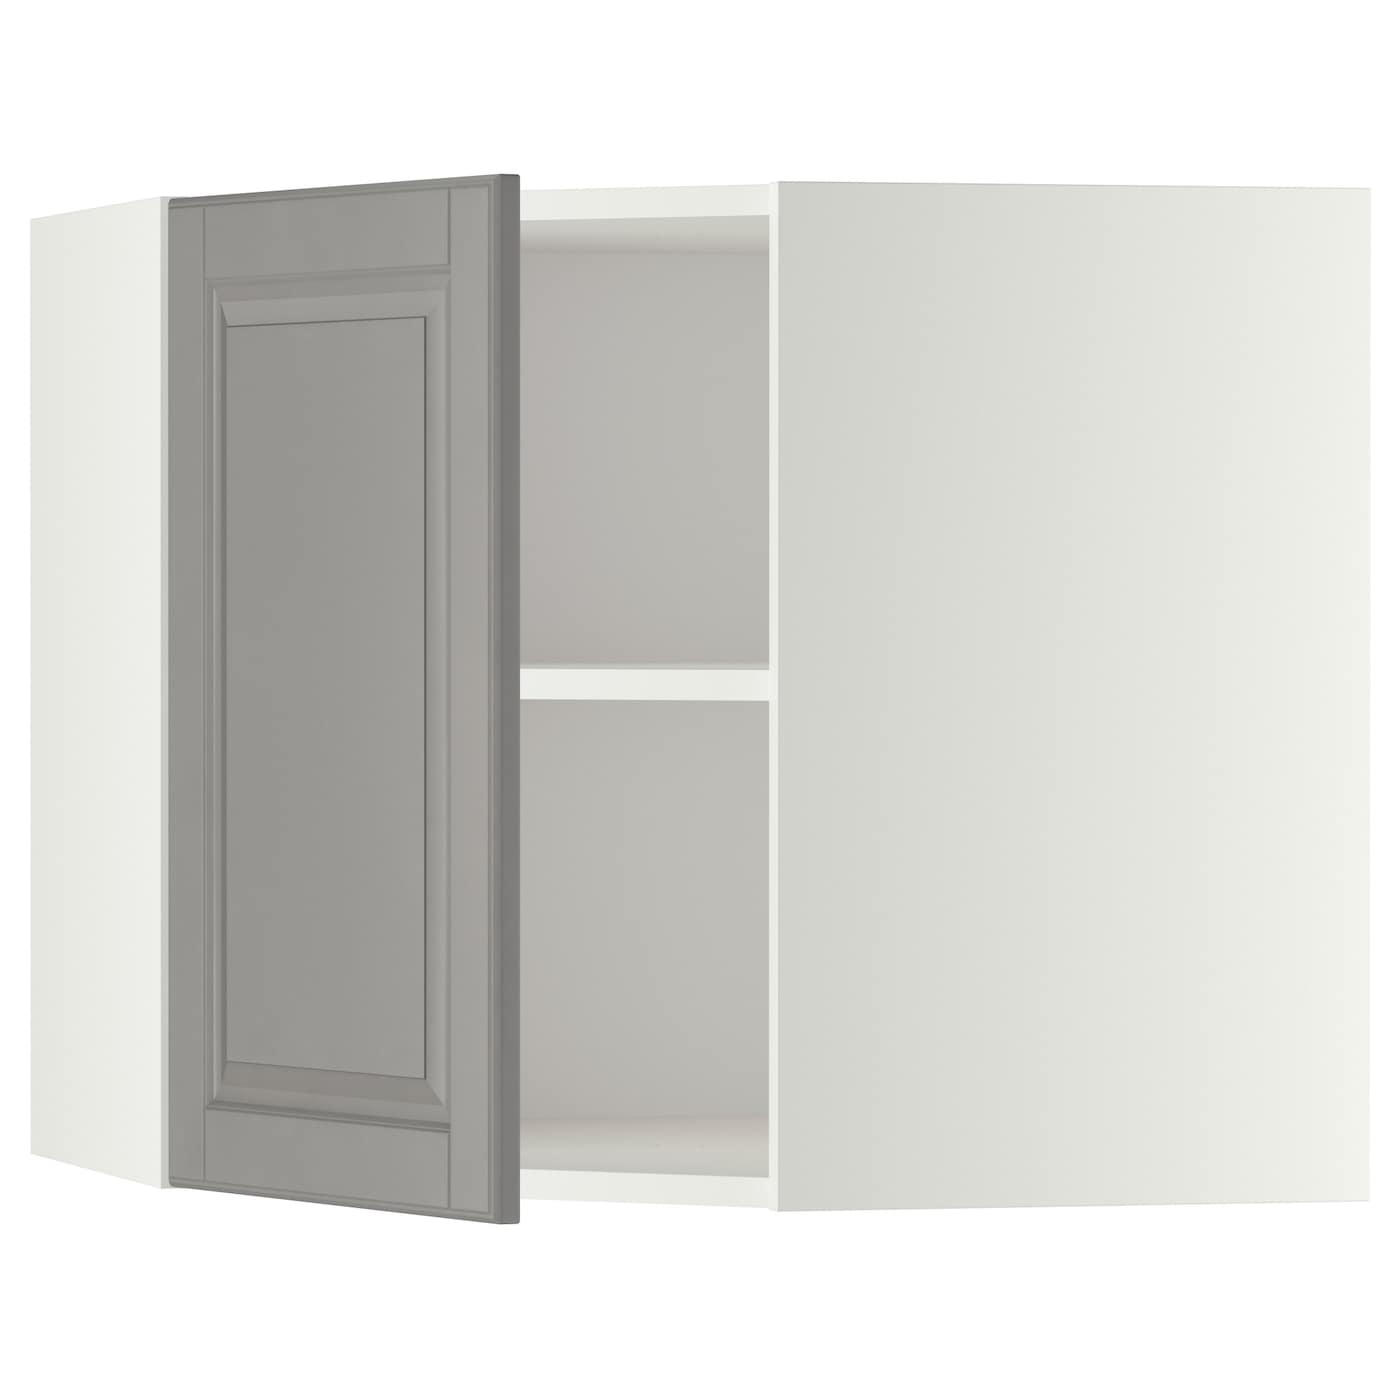 Metod Wall Cabinet With Shelves: METOD Corner Wall Cabinet With Shelves White/bodbyn Grey